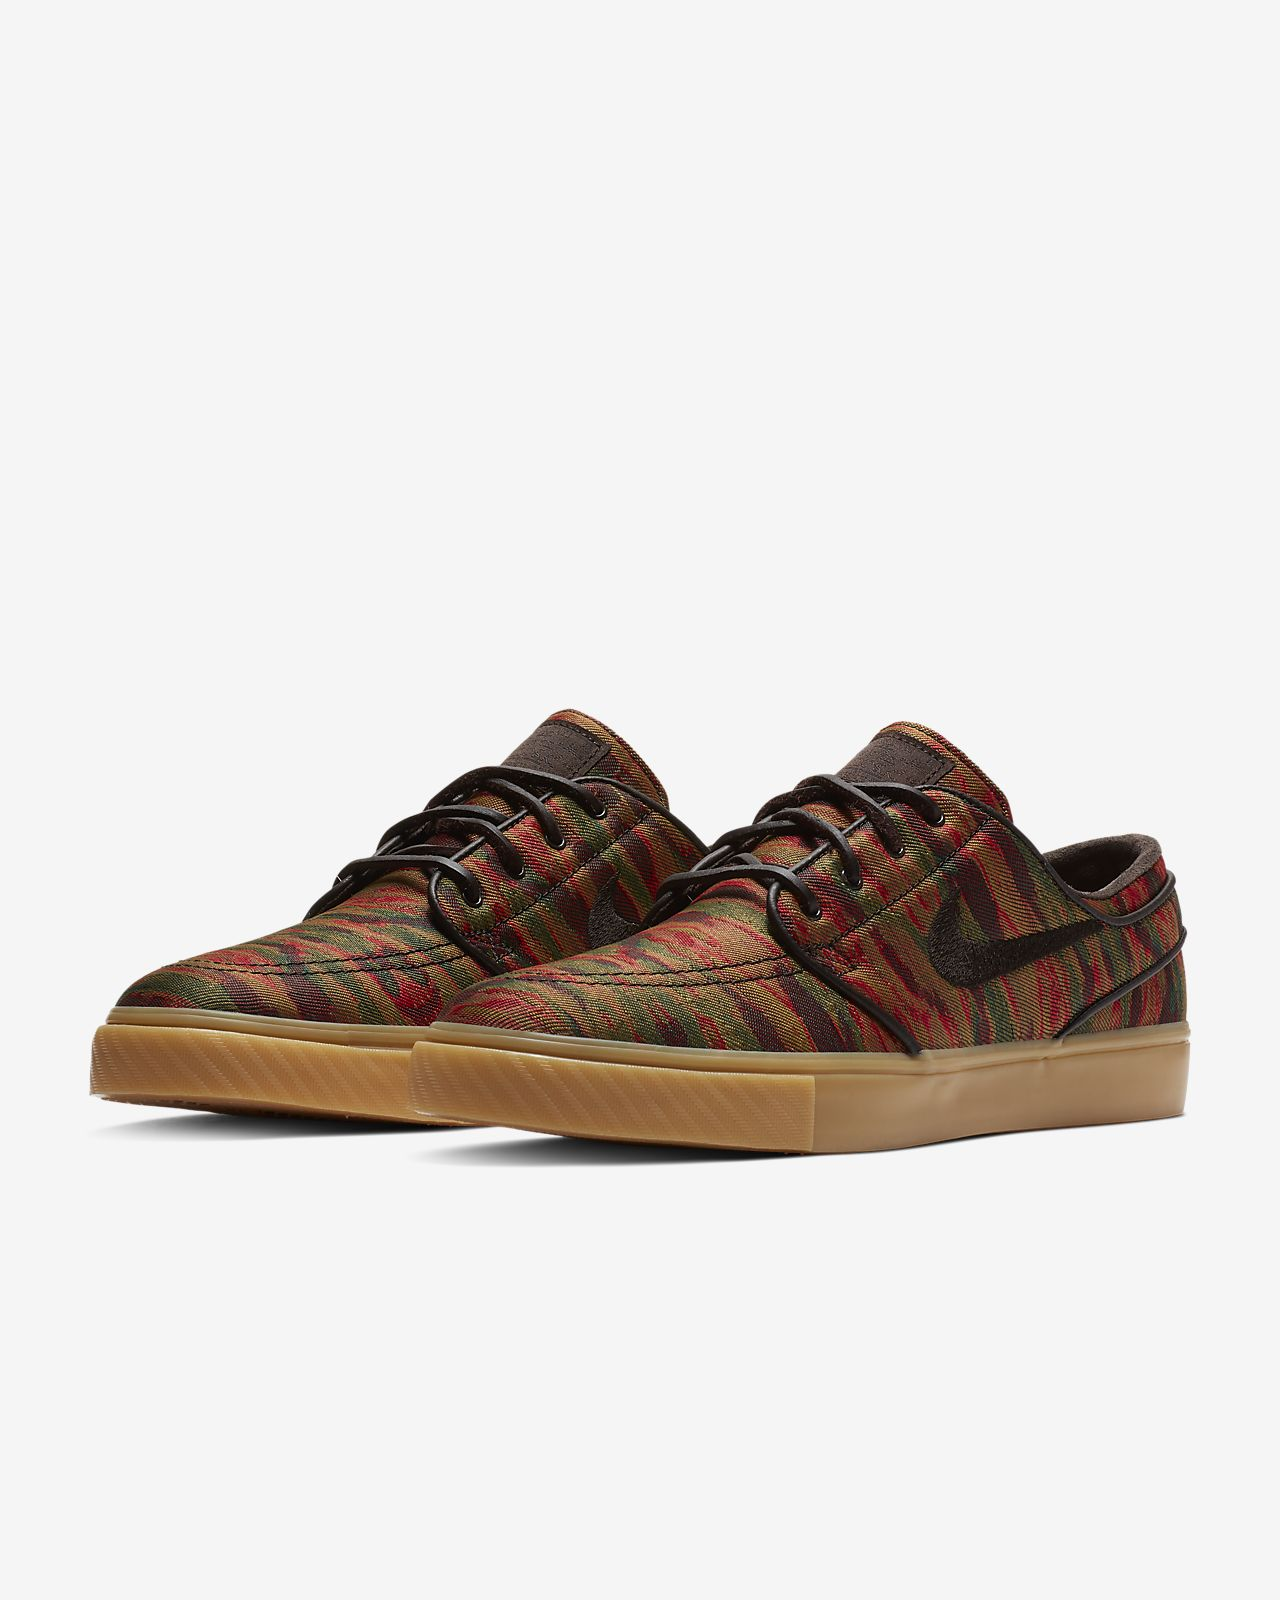 finest selection 6c30f 965c3 ... Nike SB Zoom Stefan Janoski Canvas Premium Men s Skateboarding Shoe